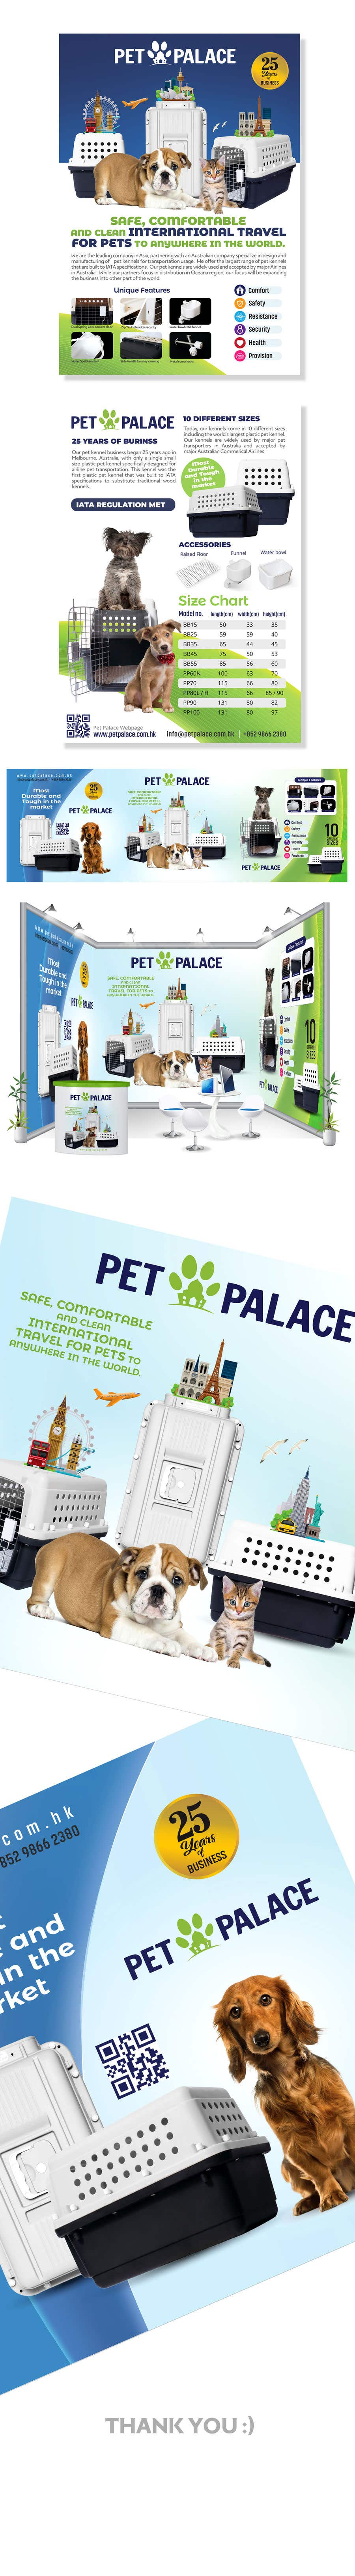 Proposition n°24 du concours Exhibition Booth Wall Deco Design and Flyer Design